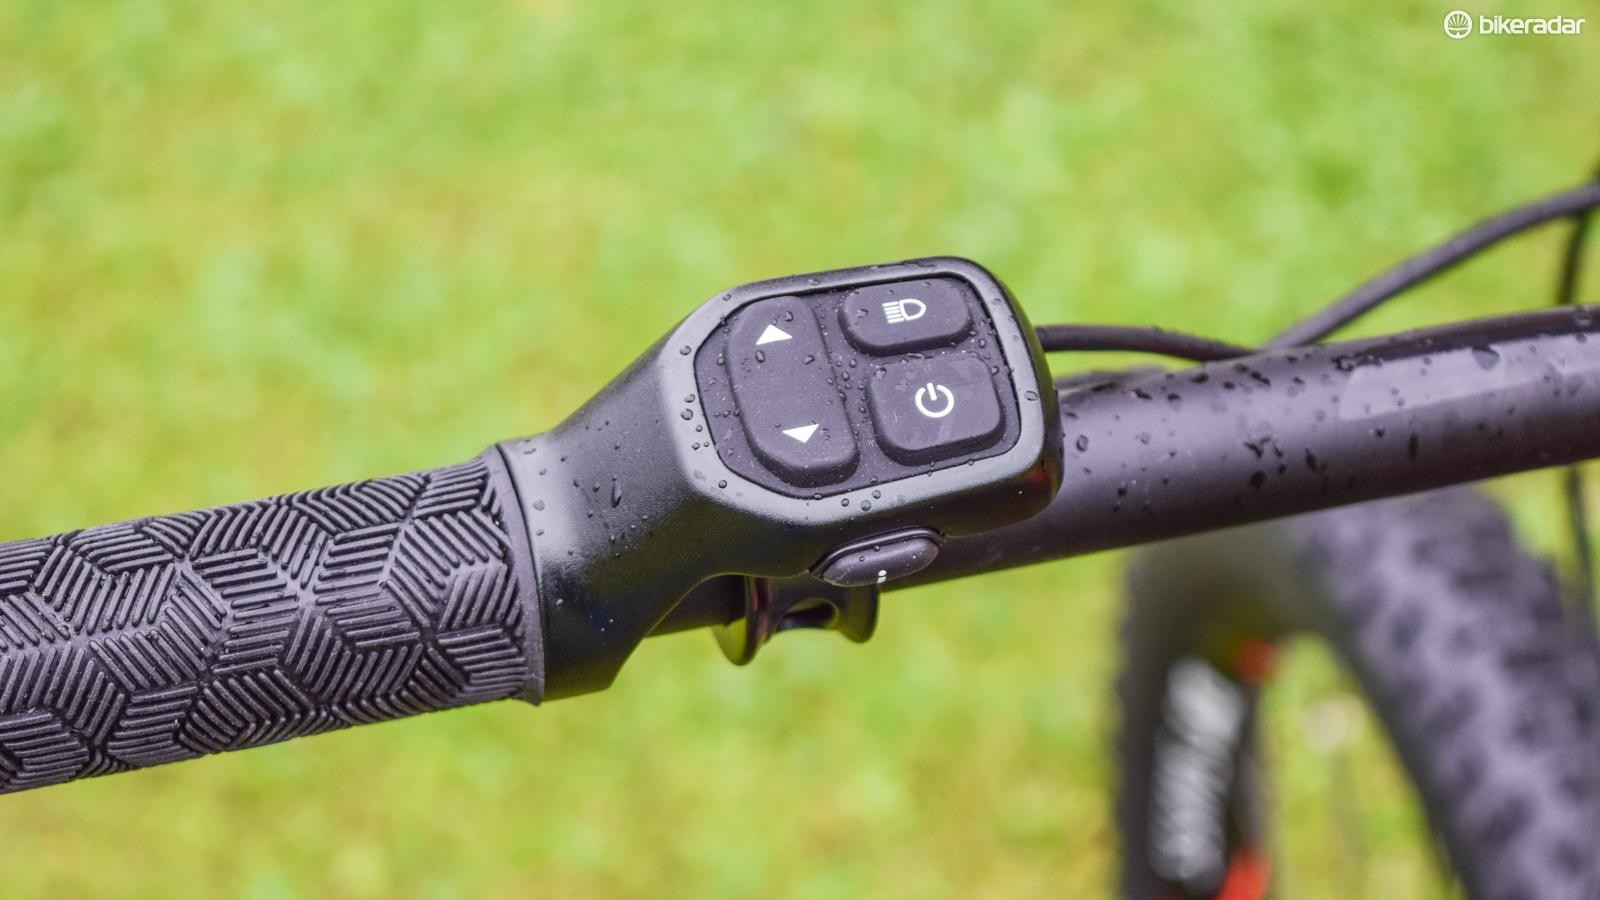 The RideControl control unit integrates with the grip lockring